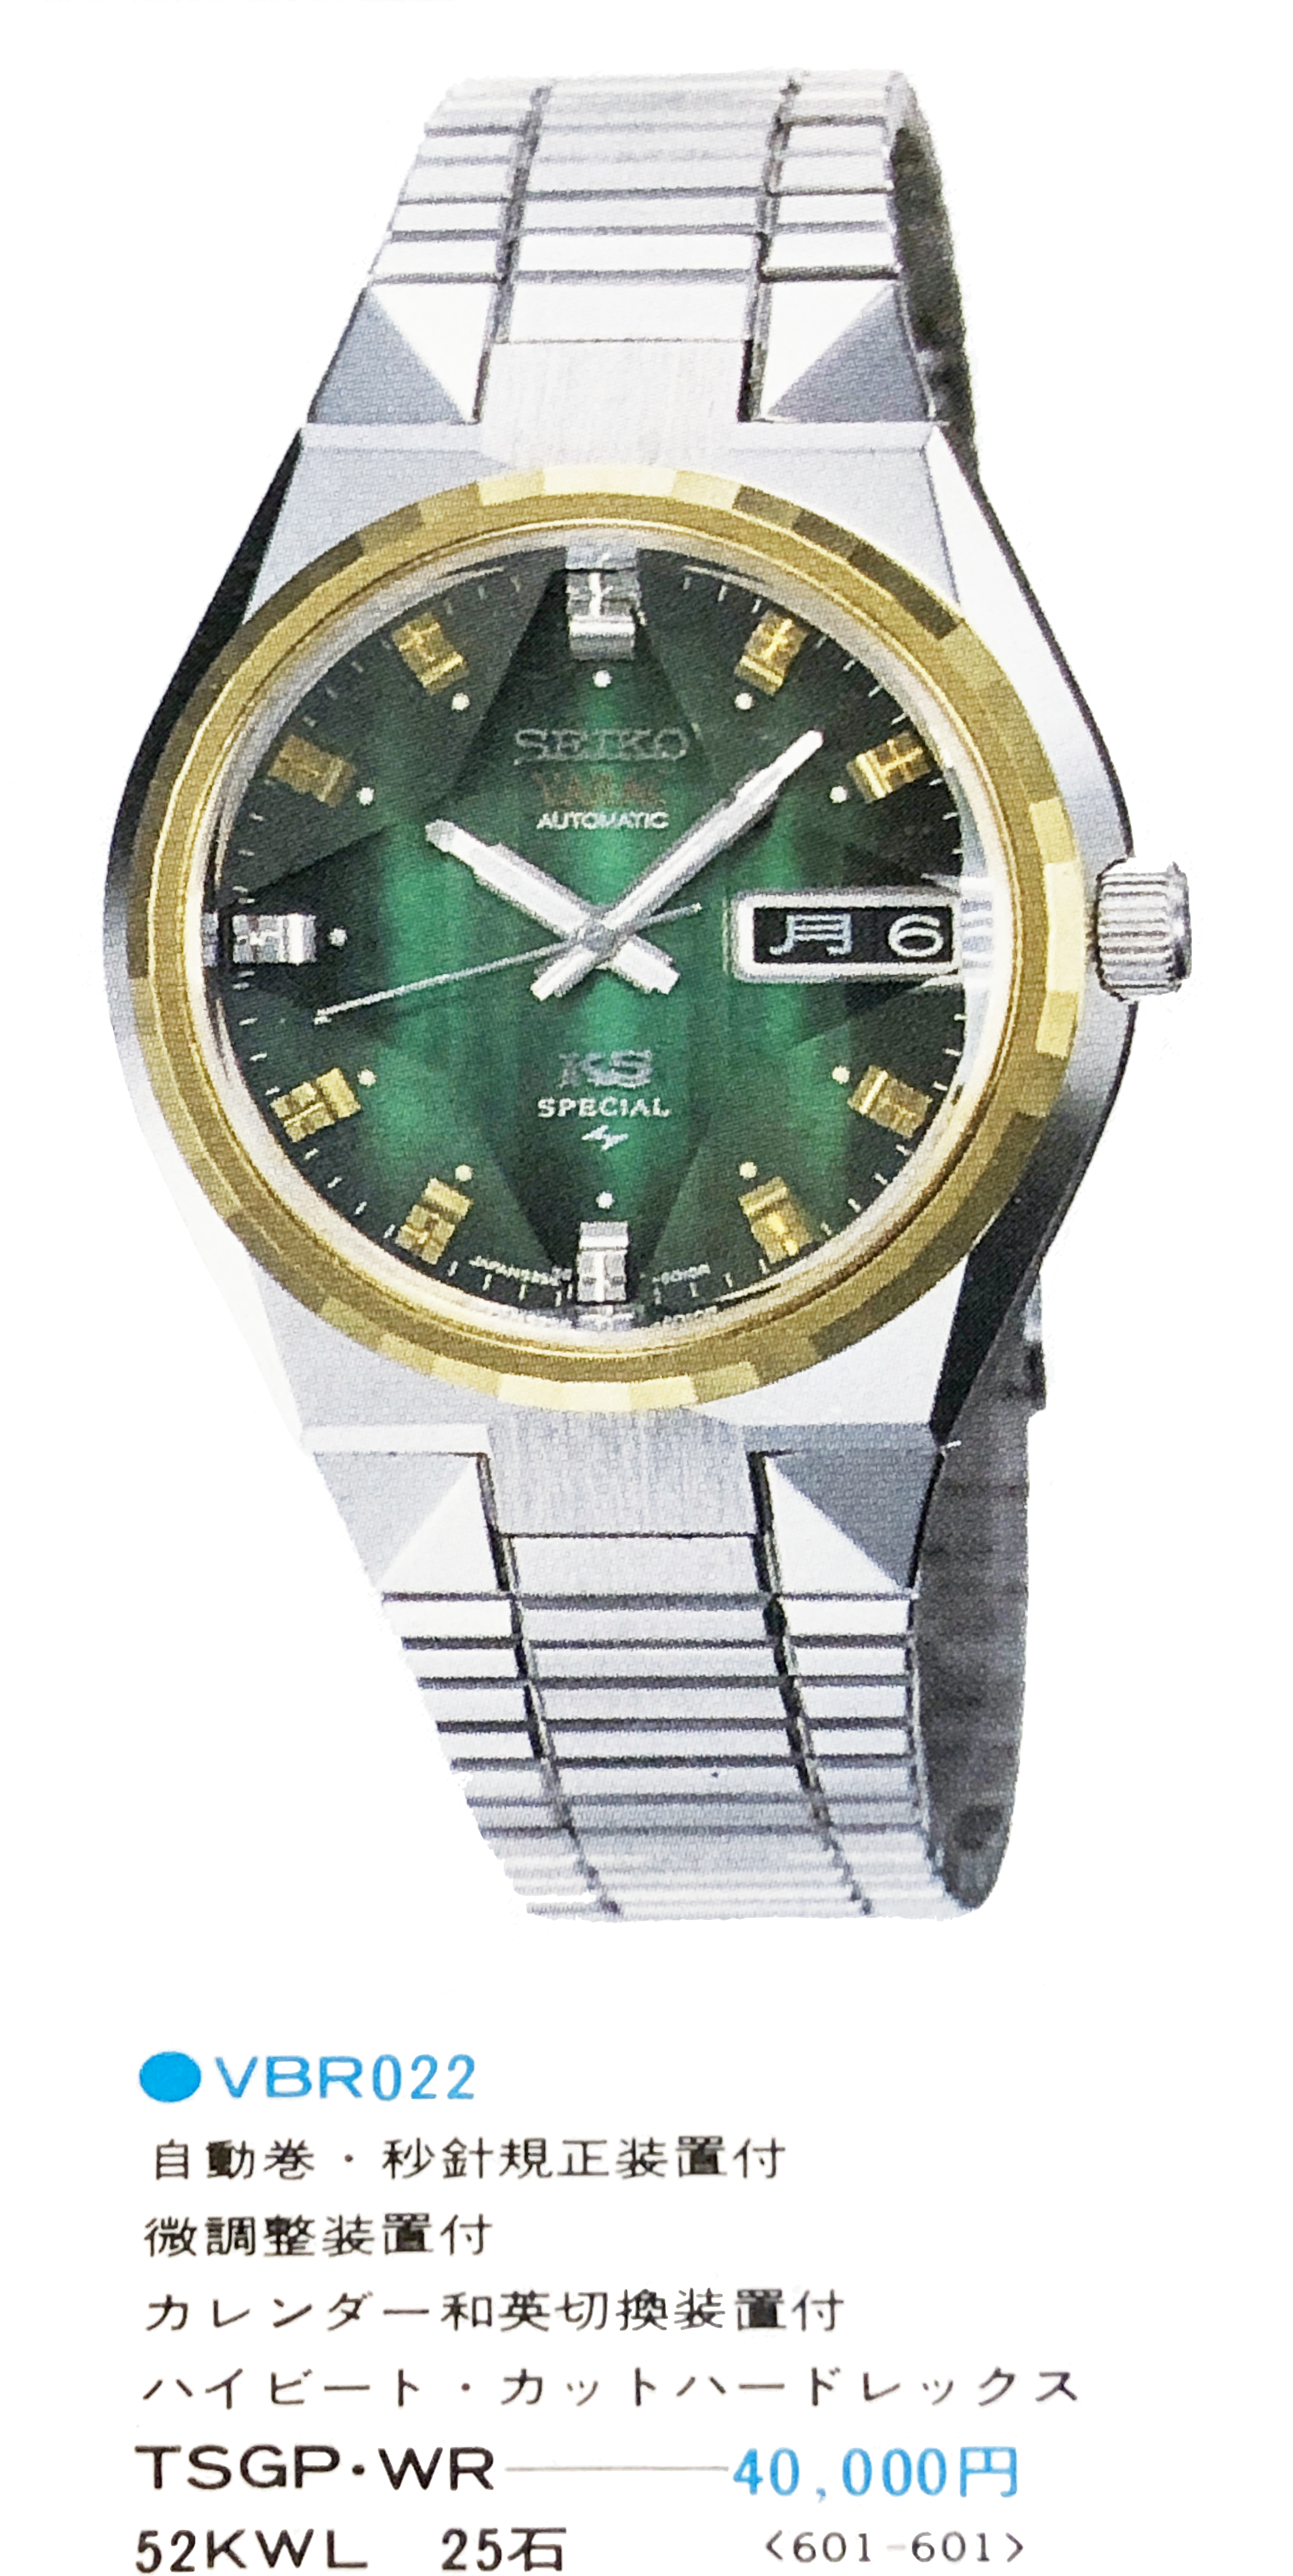 King Seiko Vanac 5256-6010 (Sold)